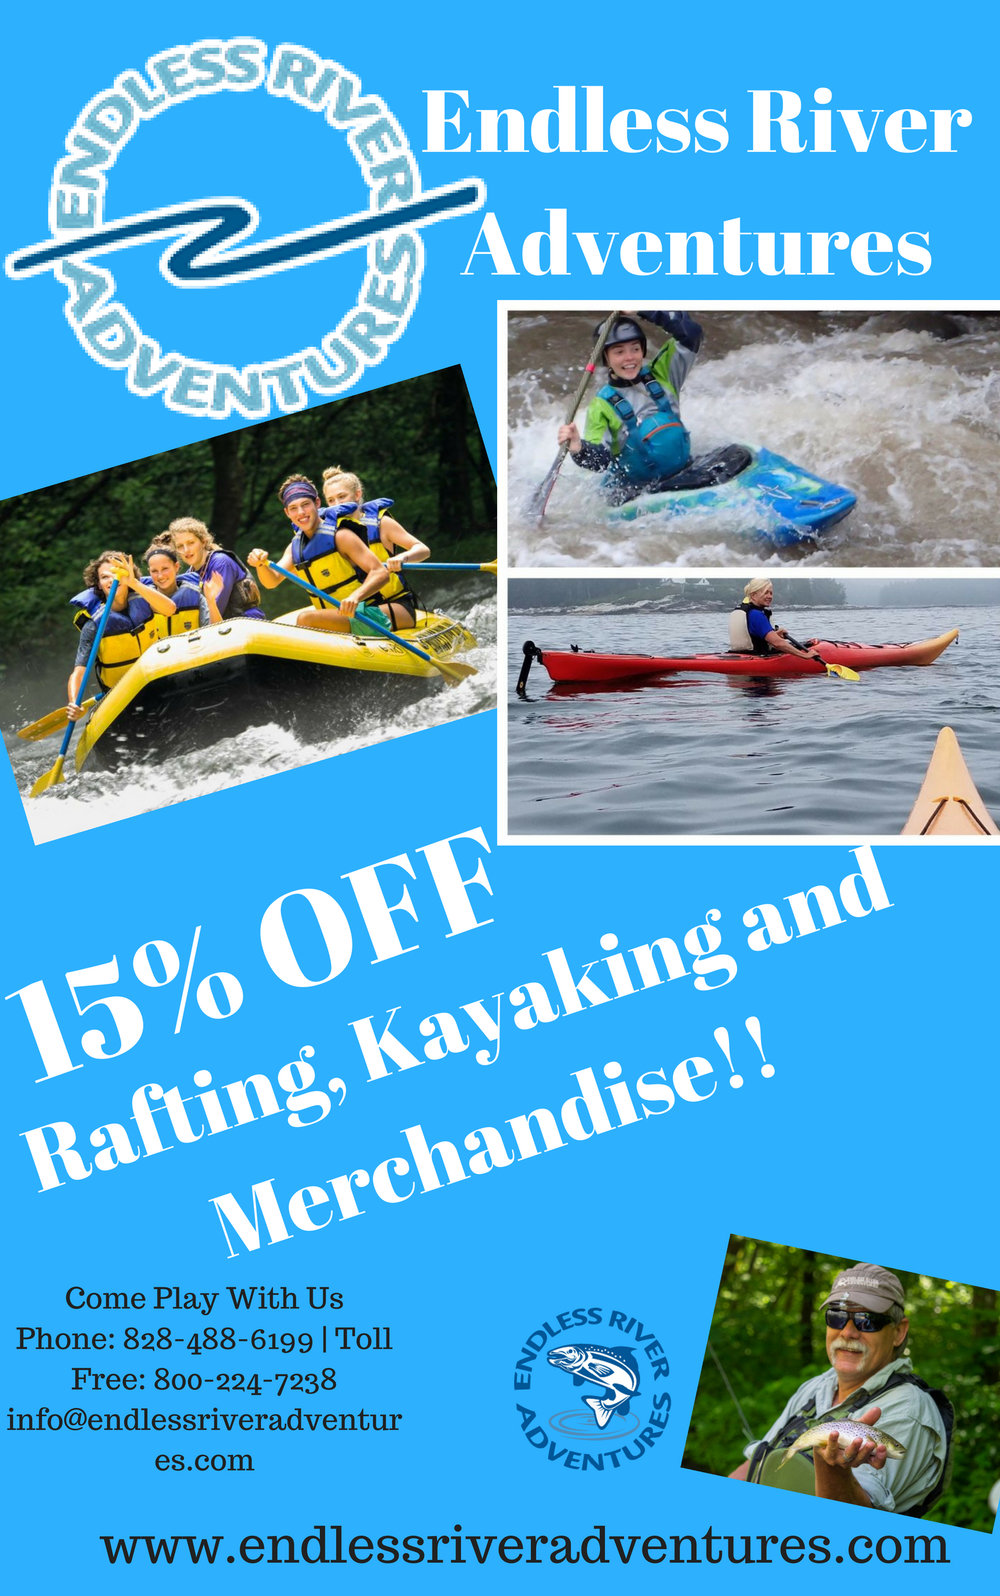 15% OFF Rafting, Kayaking and Merchandise!